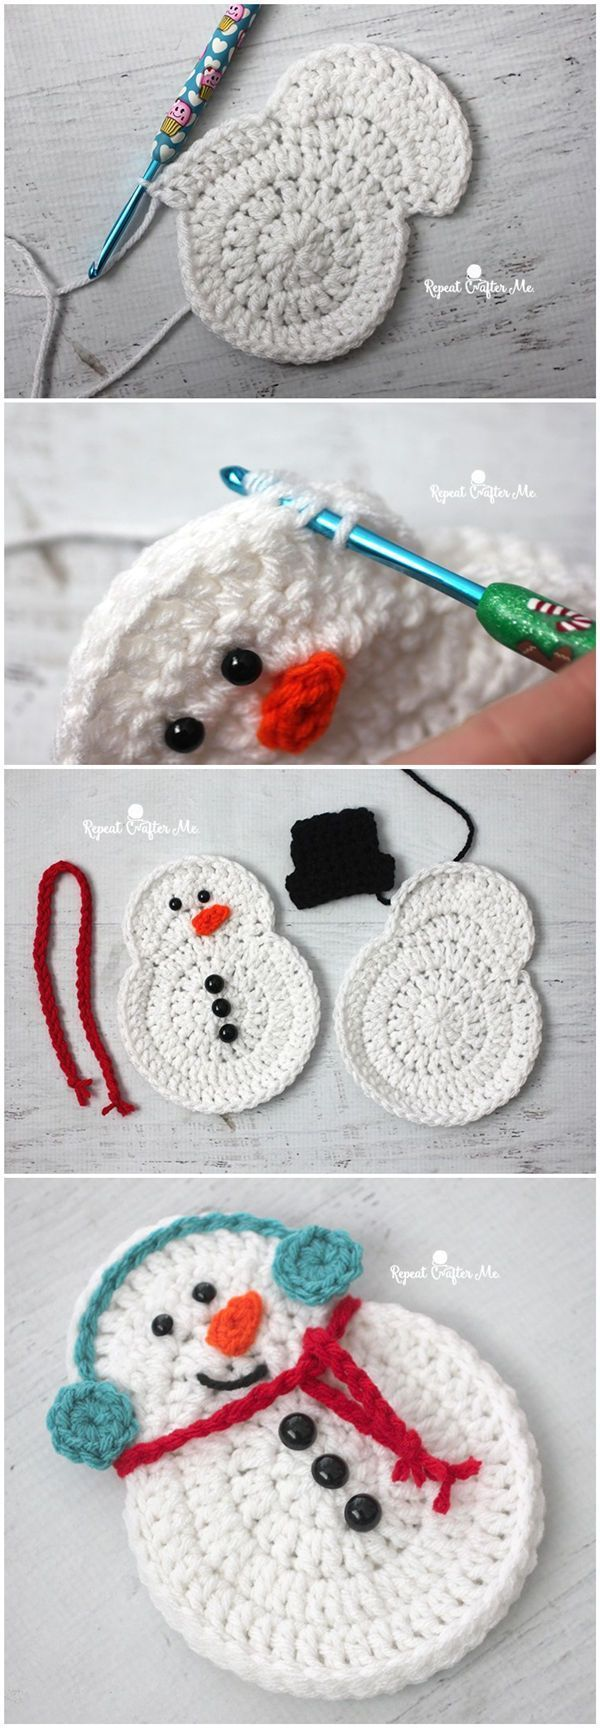 2920 best Crochet ideas and projects images on Pinterest | Amigurumi ...